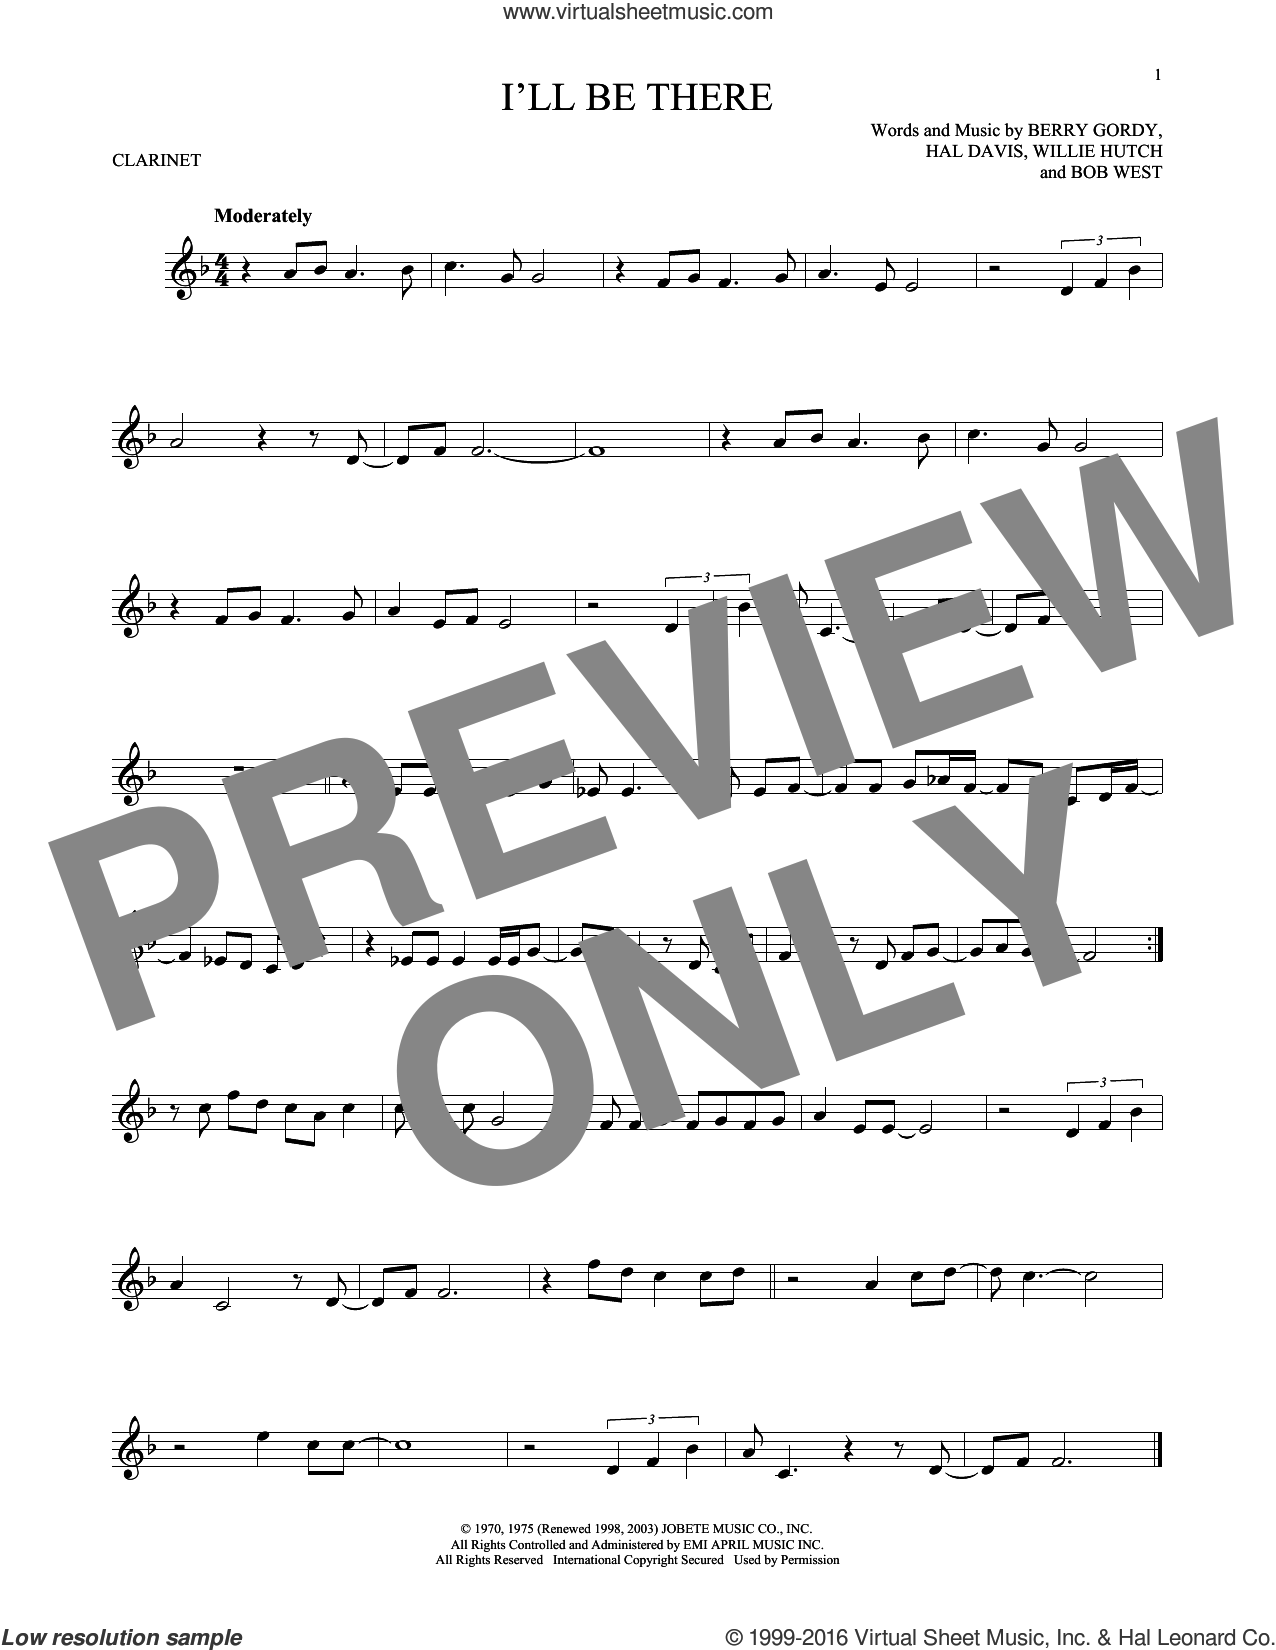 I'll Be There sheet music for clarinet solo by The Jackson 5, Berry Gordy Jr., Bob West, Hal Davis and Willie Hutch, intermediate